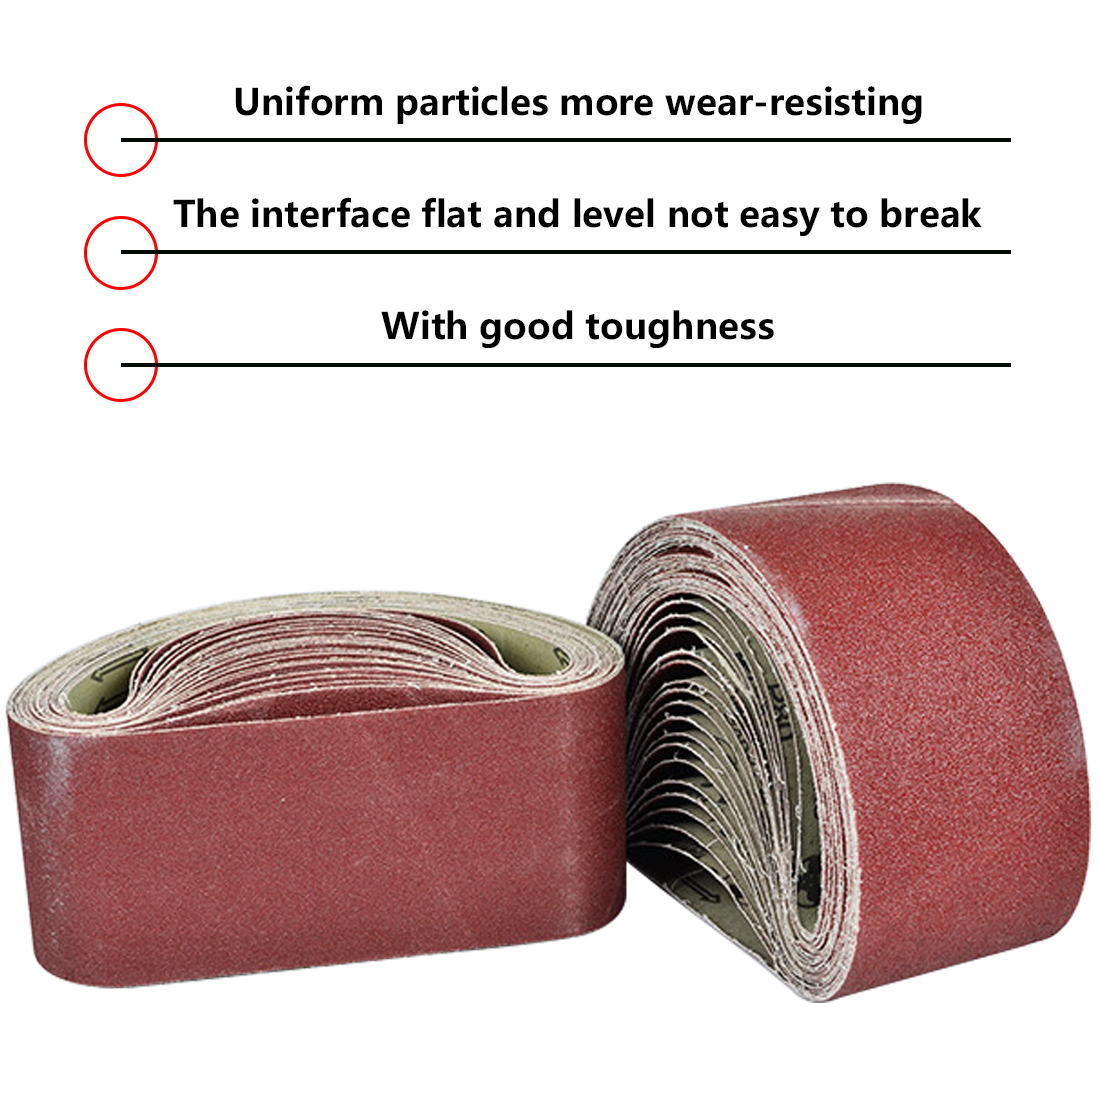 Audacious 533x75mm Sanding Belts 80-320 Grits Sandpaper Abrasive Bands For Sander Power Rotary Tools Dremel Accessories Abrasive Tool Non-Ironing Tools